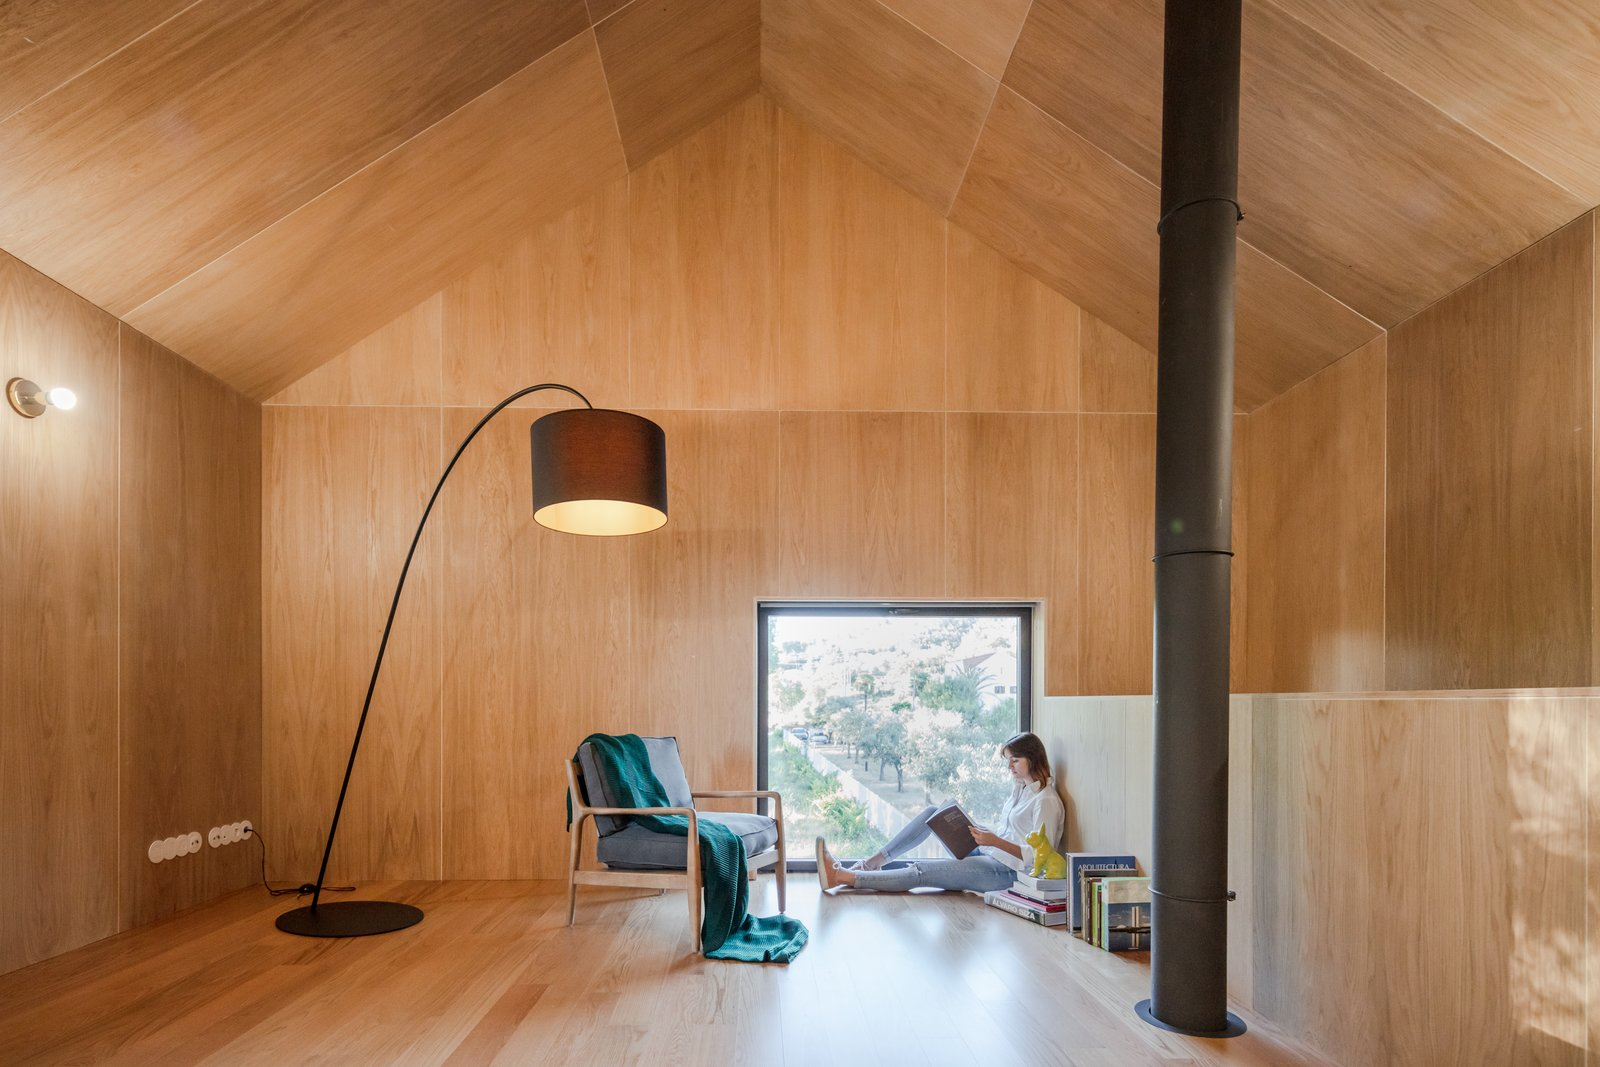 MCR2 House by Filipe Pina Arquitectura Wood clad walls